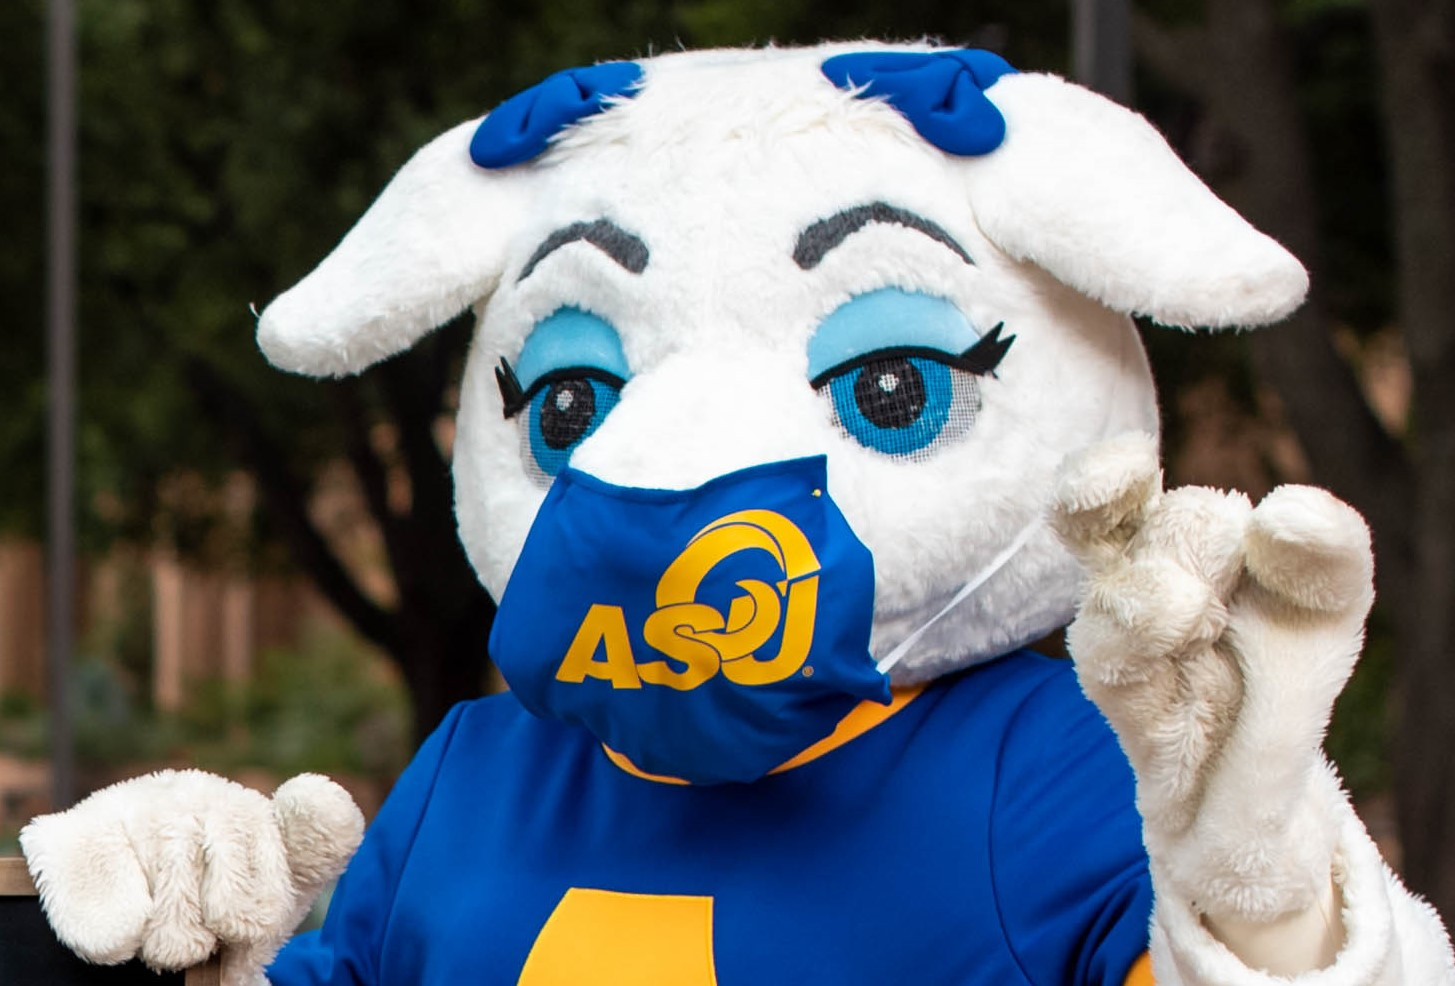 Bella, the lady Ram mascot, wearing face protection and giving the ASU sign.